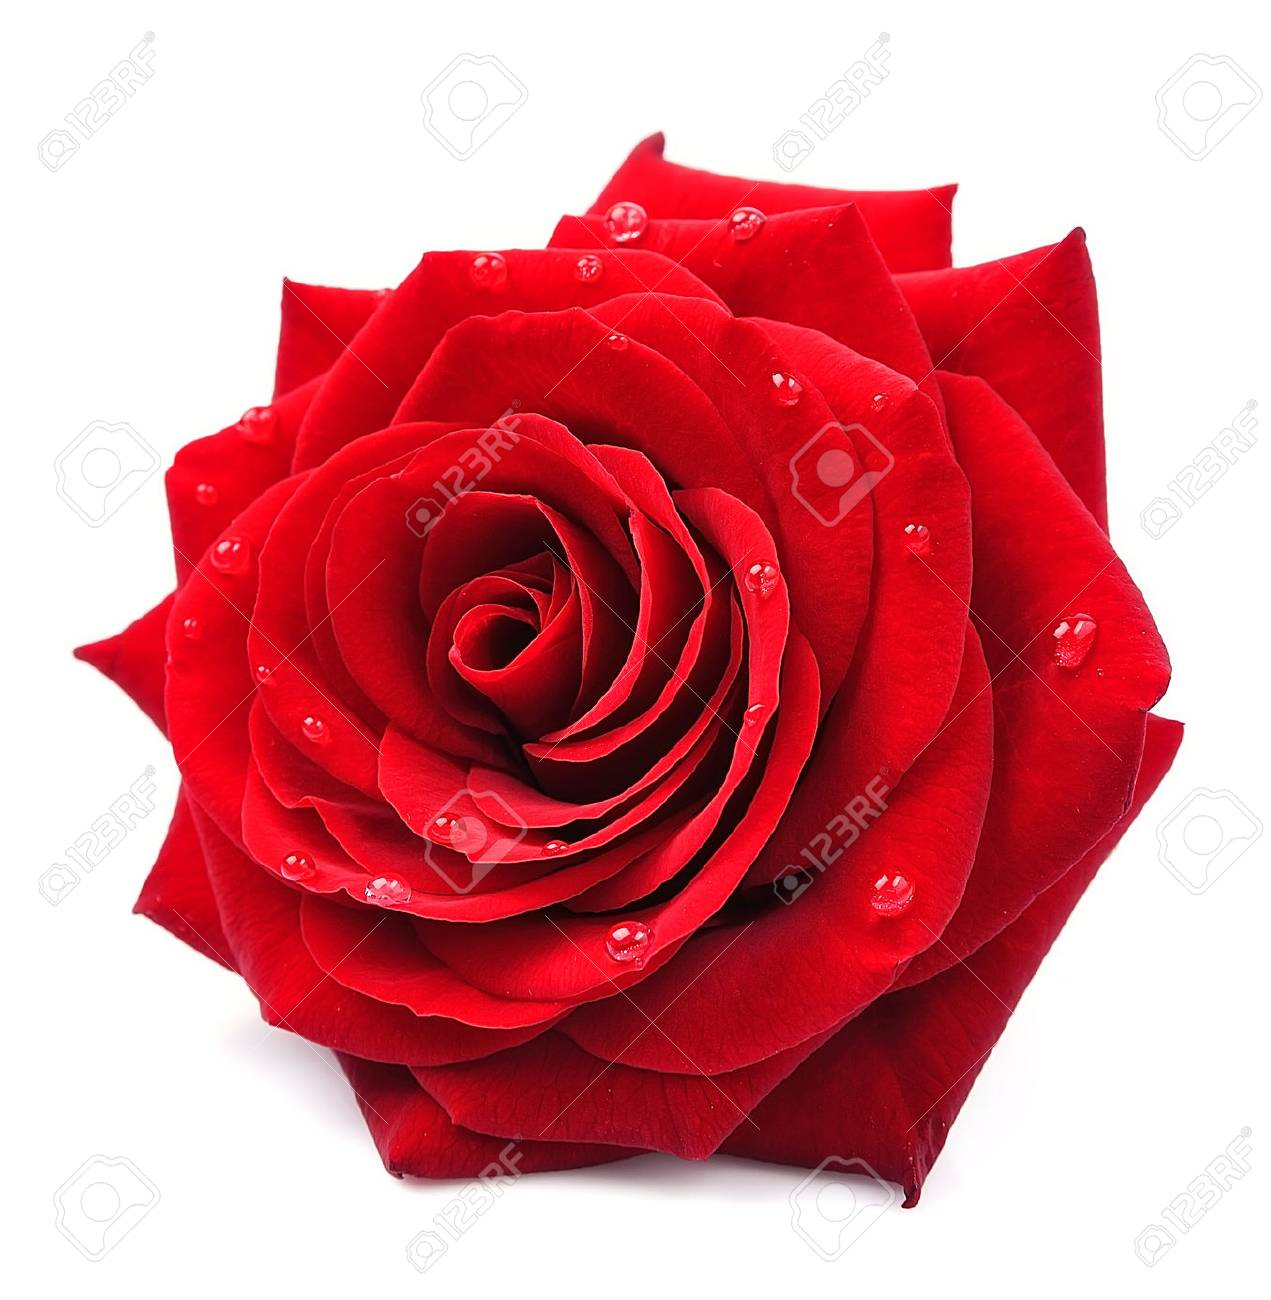 Red Rose With Drops Isolated On White Background Stock Photo ...